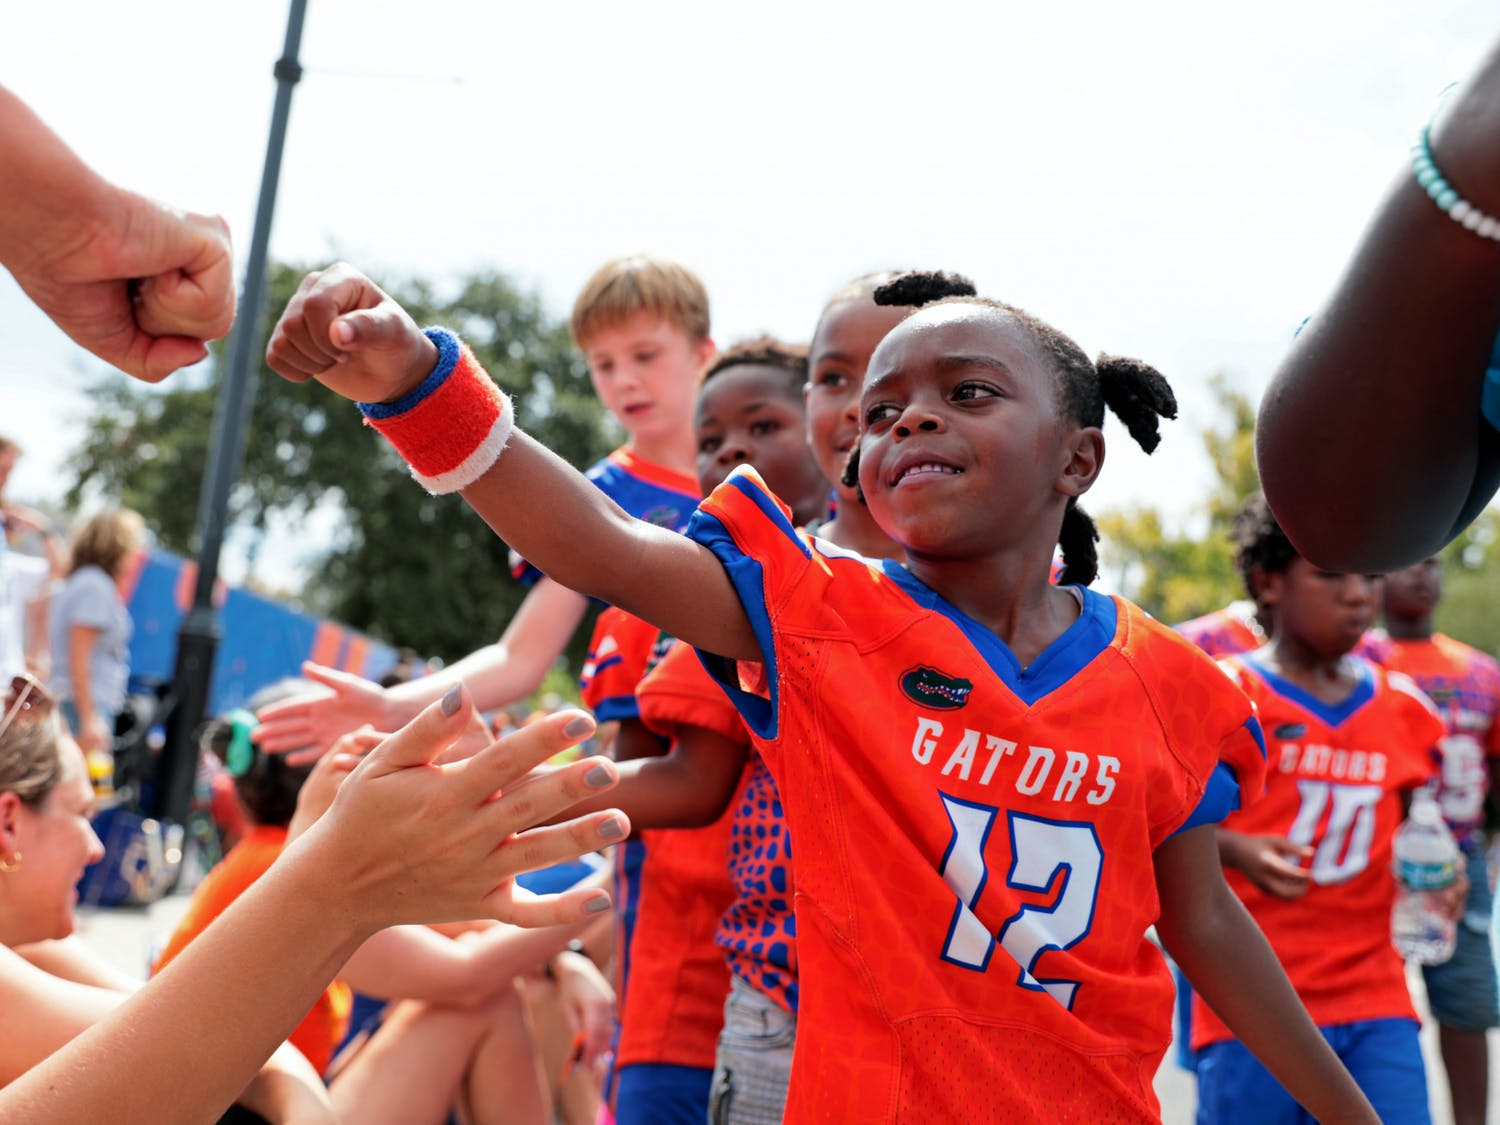 UF Homecoming kicked off with the parade, which returned for the first time since 2019. Dance performances, public figures, marching bands, fire trucks and more entertained the crowd. Some people arrived at 9 a.m. to secure their spot on the sidewalk for the parade.